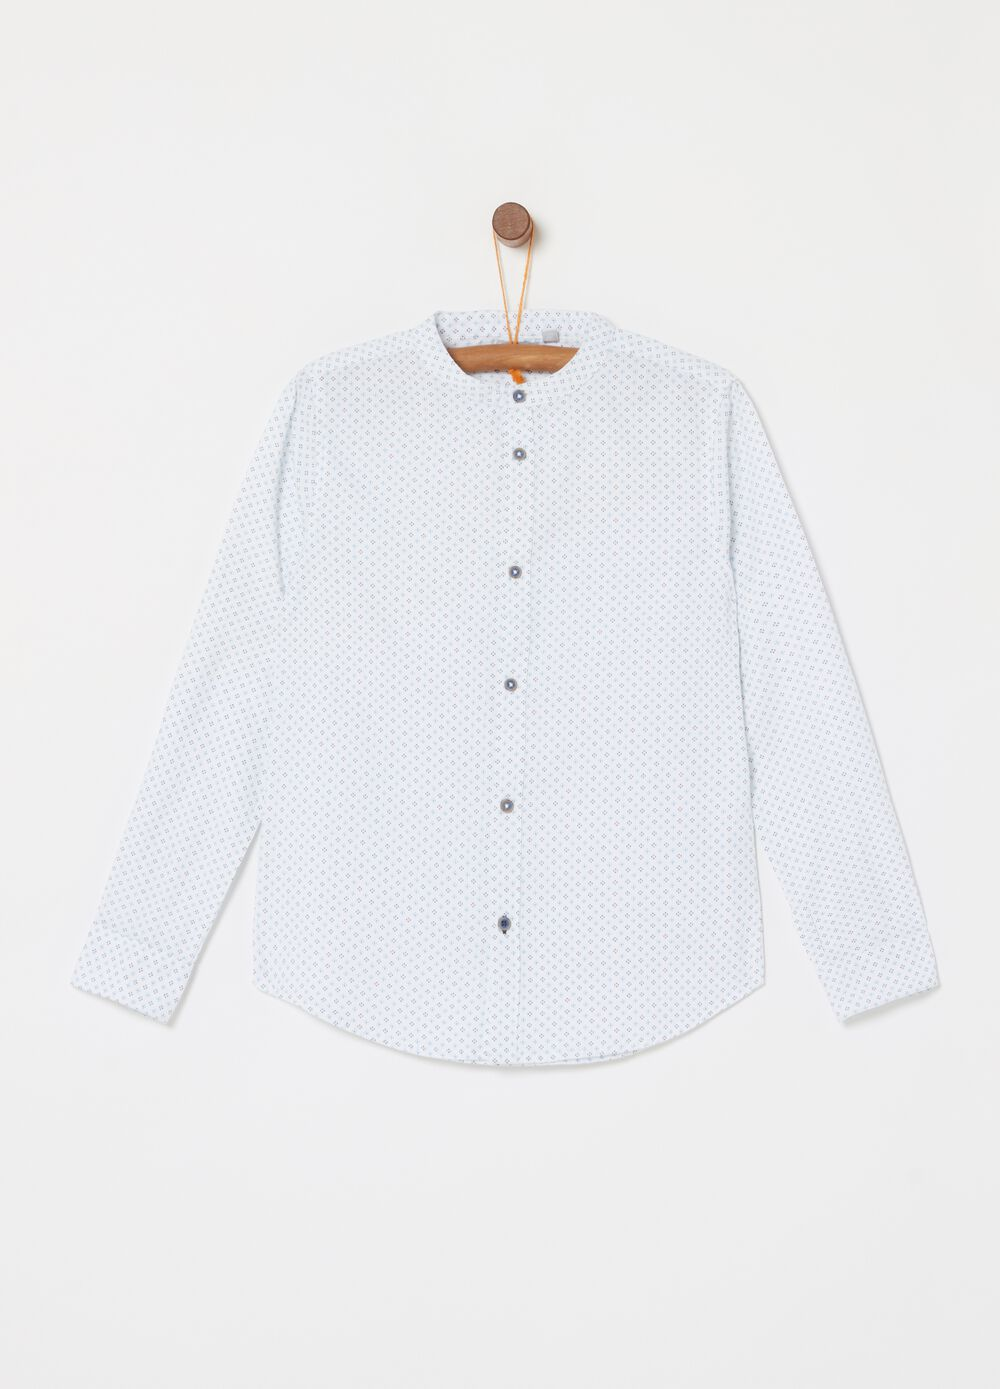 100% cotton shirt with geometric pattern